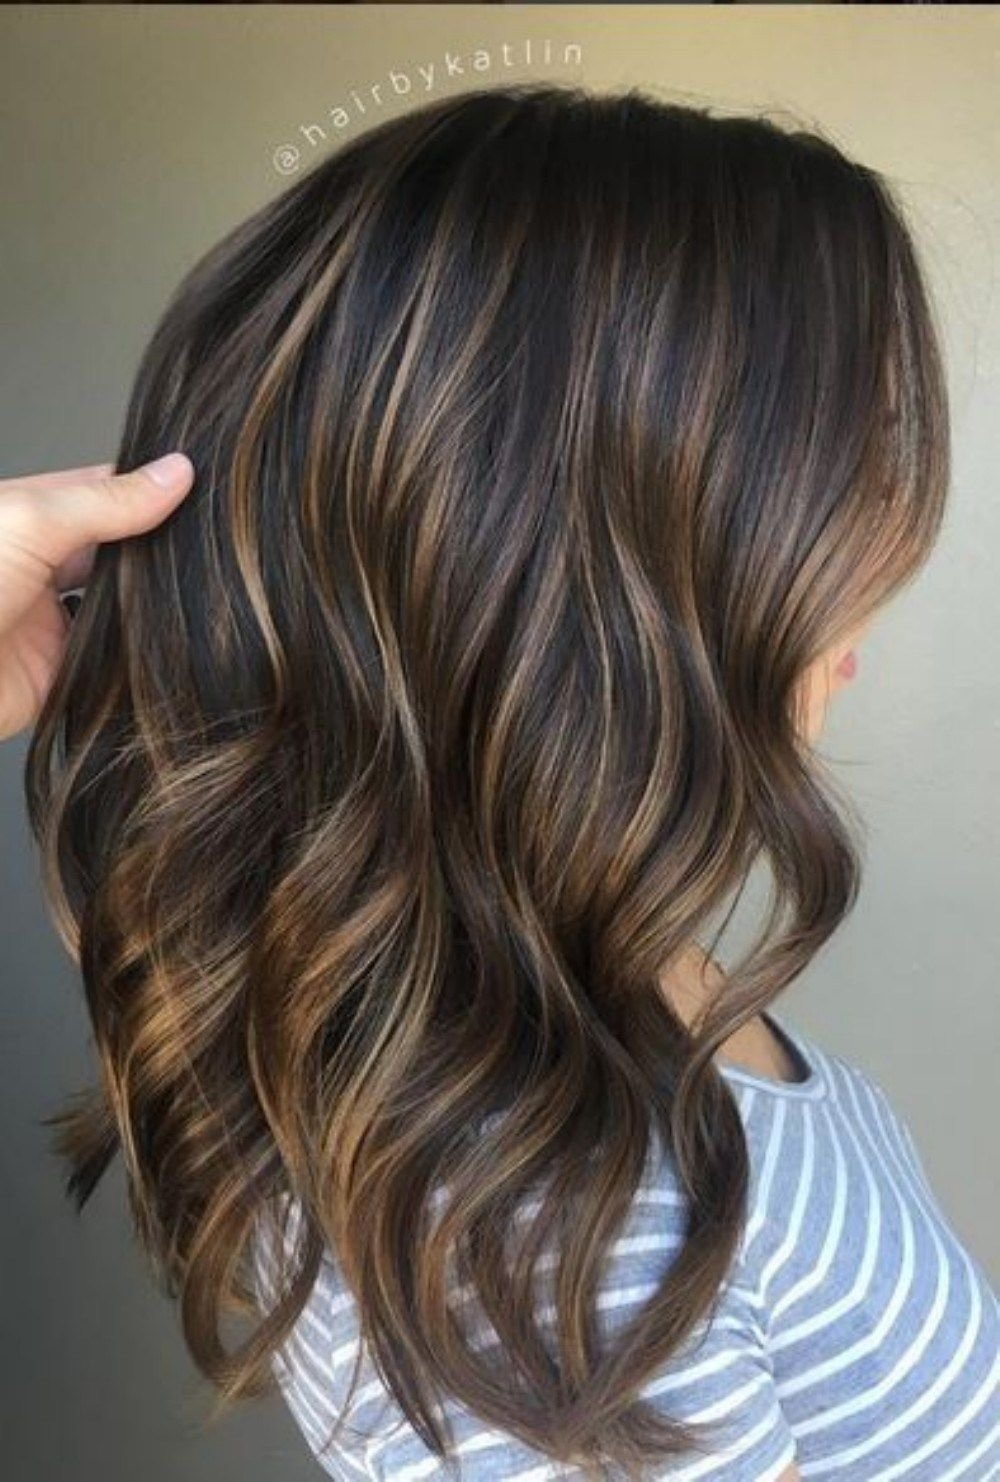 10 Awesome Hair Dye Ideas For Brunettes top brunette hair color ideas to try 2017 17 hairstyle 4